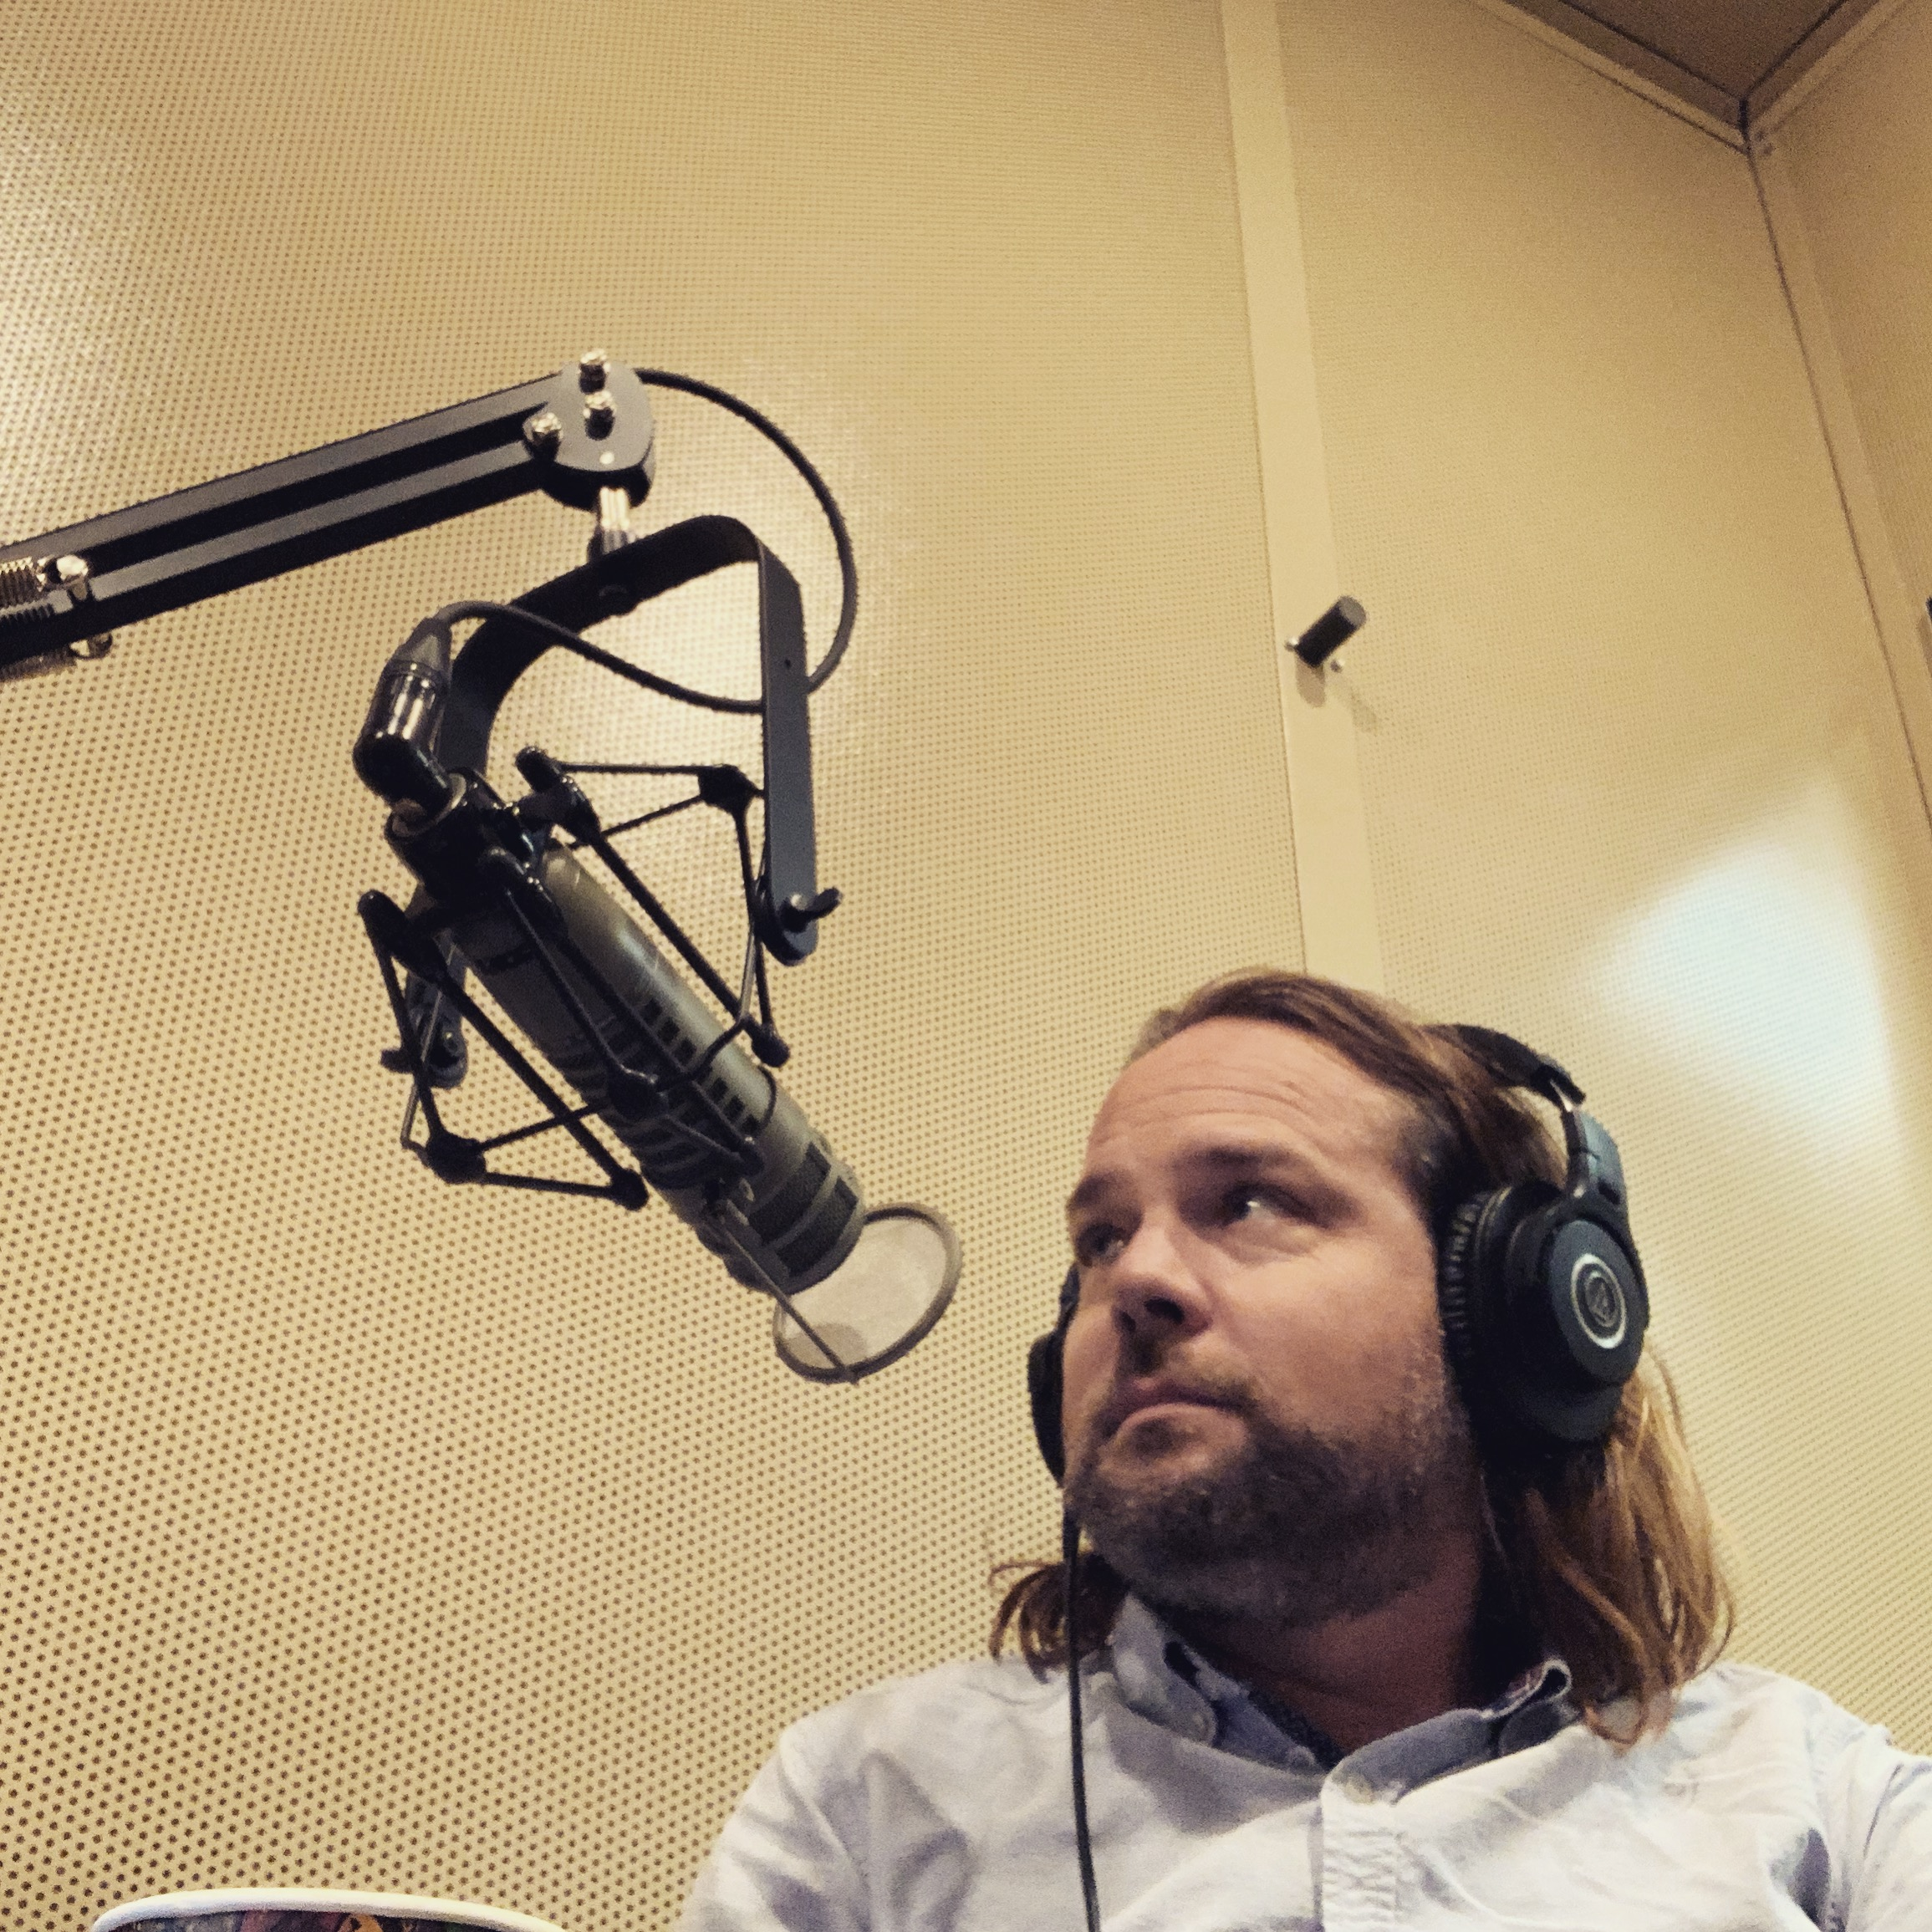 Mallinson has been a guest on countless radio shows and podcasts, and was the Co-Host for the popular religion and culture podcast  Virtue in the Wasteland , which ran for nearly 6 years.